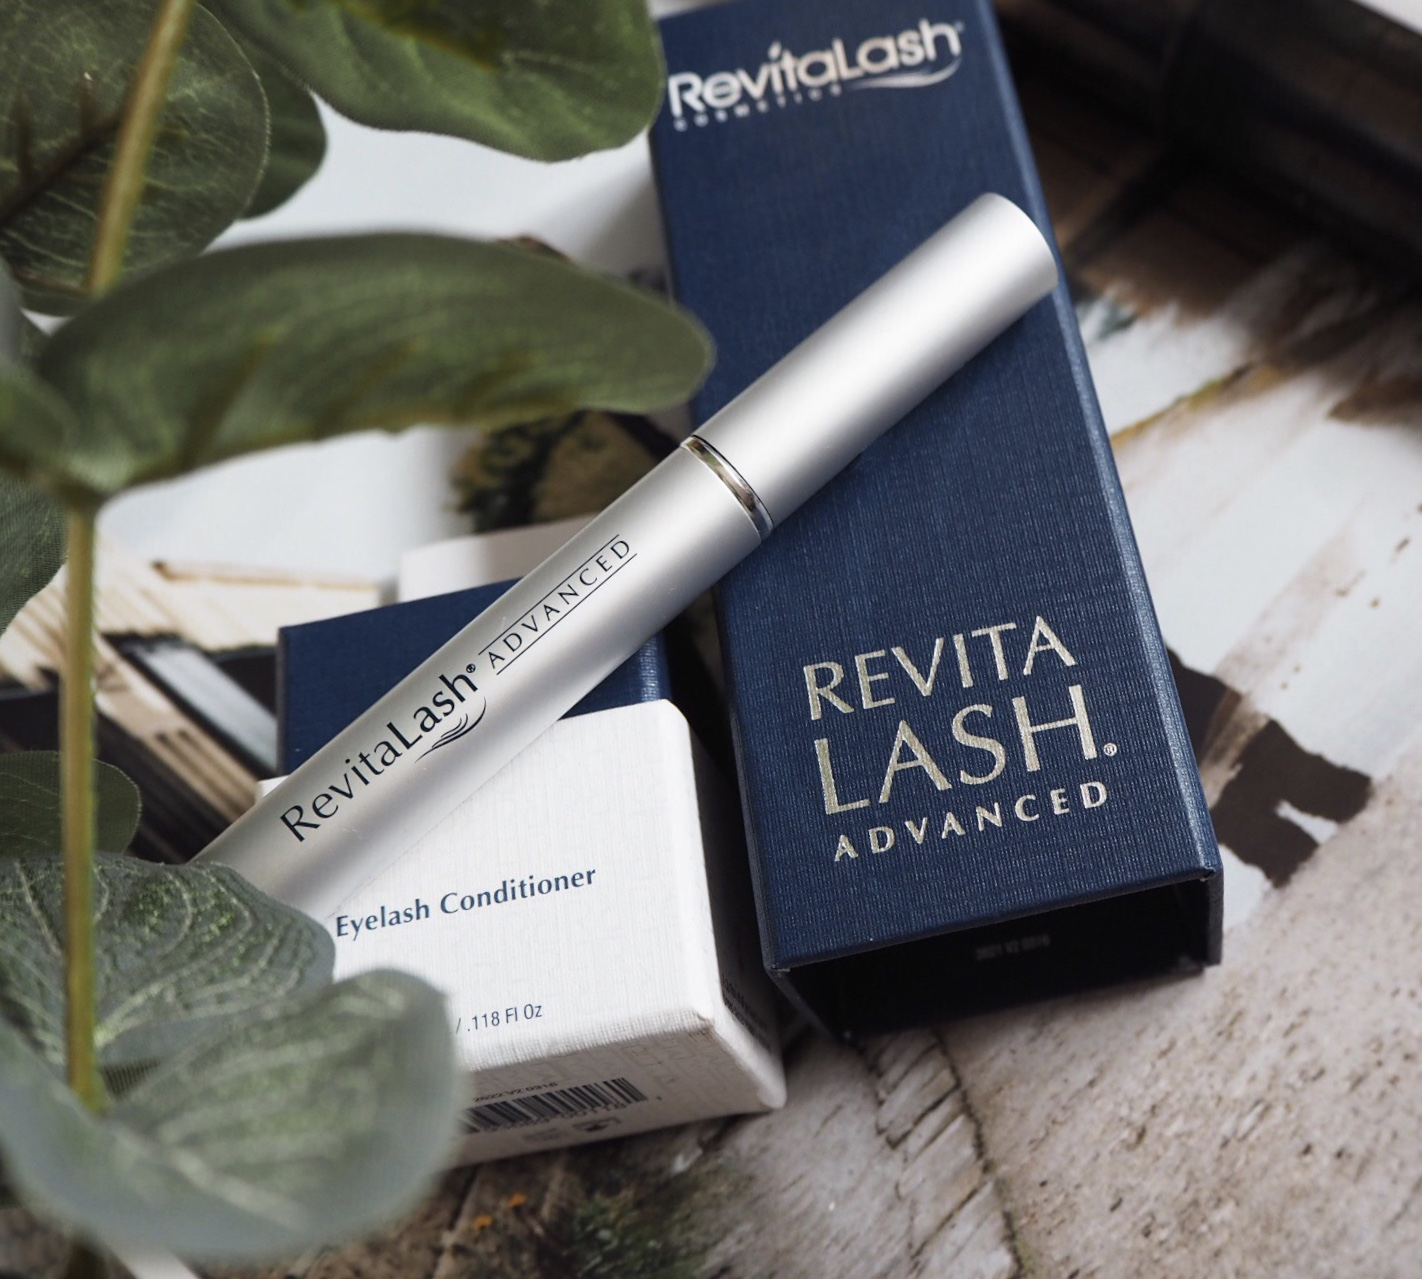 Revitalash, advanced lash conditioner with packaging